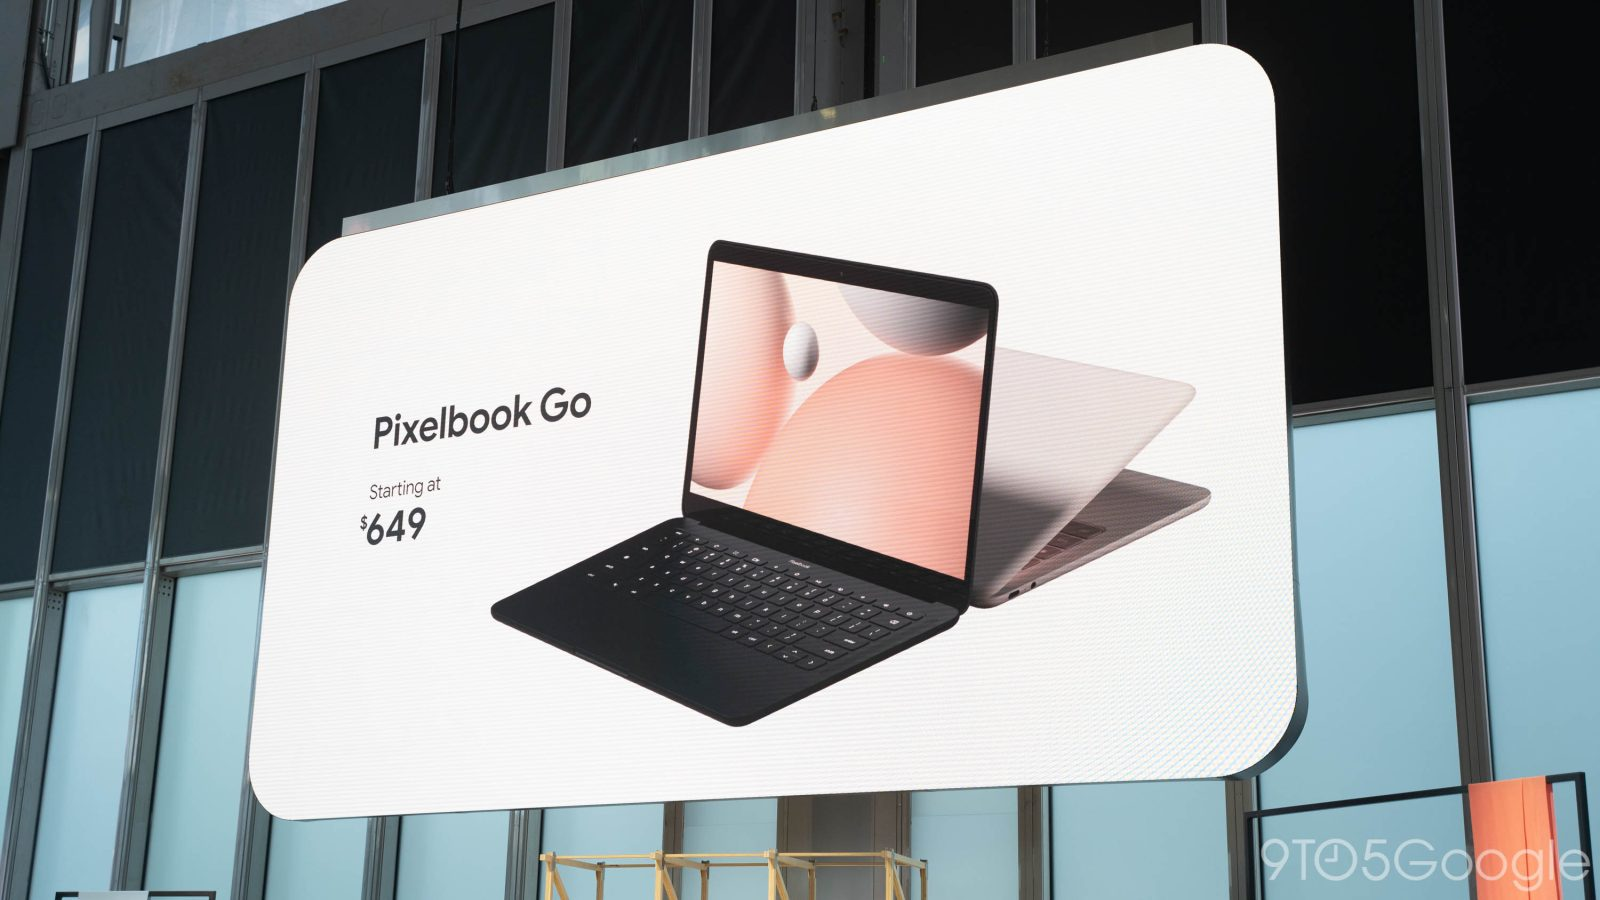 Google announces the Pixelbook Go in Just Black and Not Pink, starting at $649